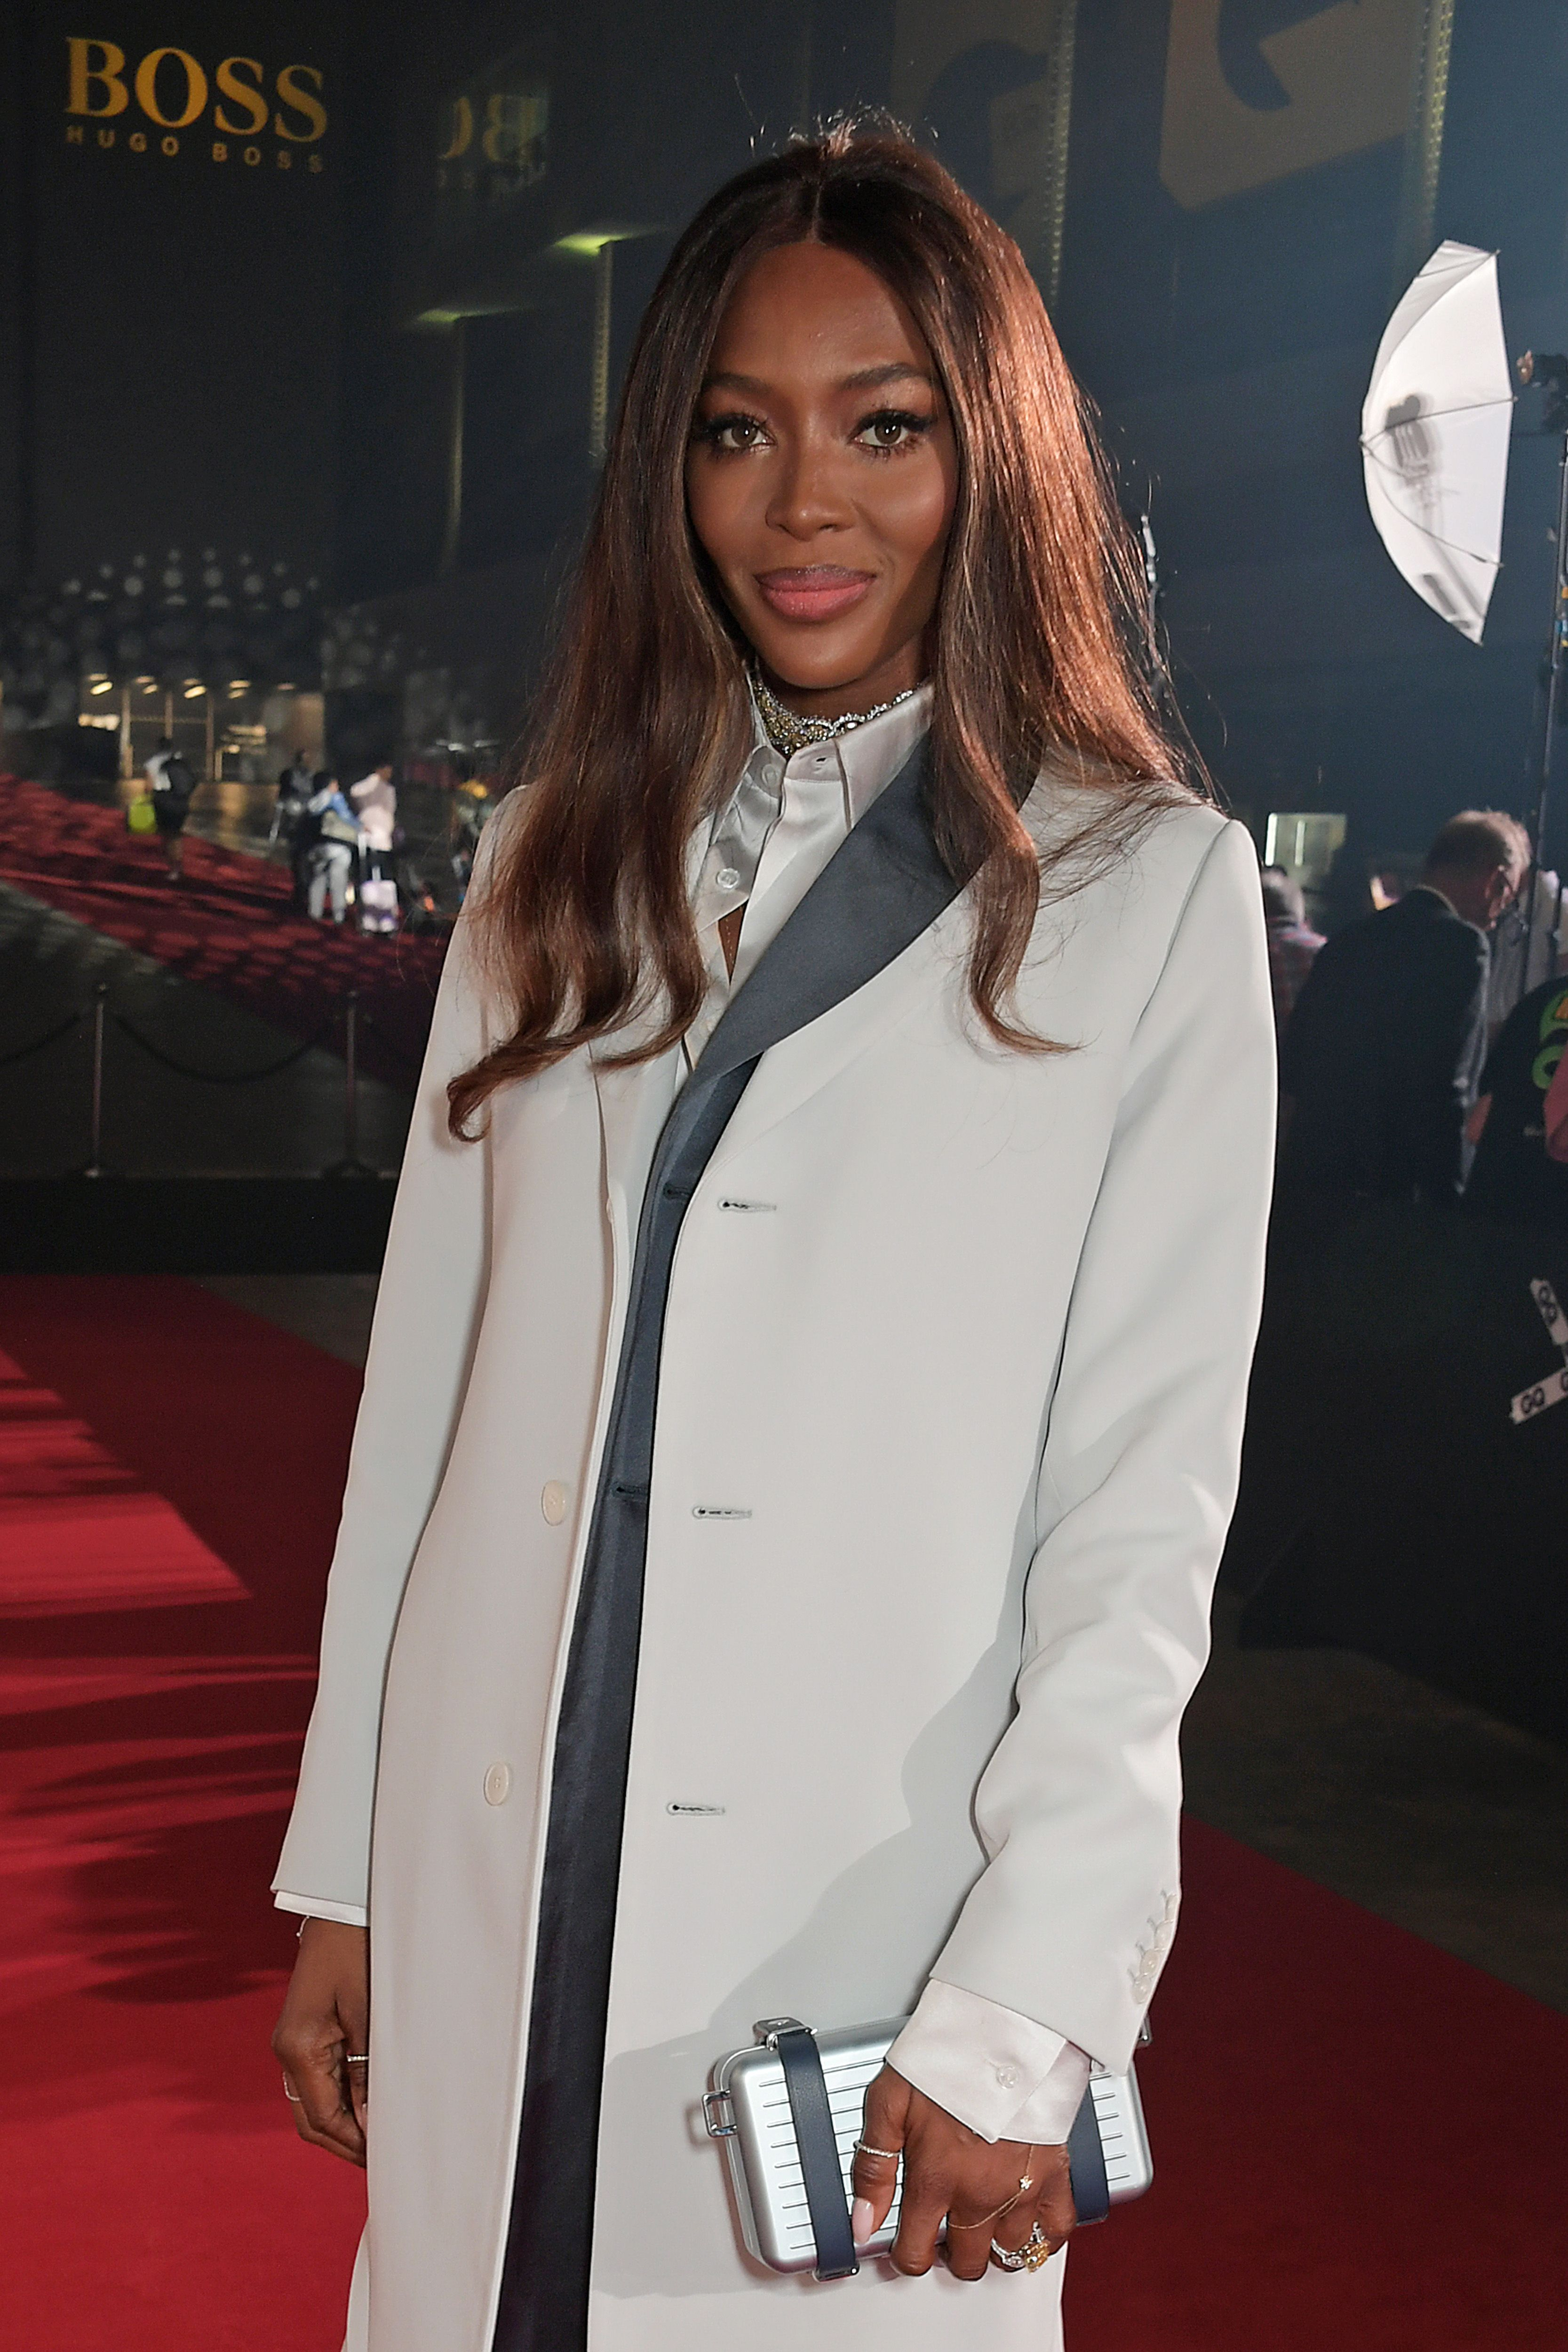 Naomi Campbell attends the GQ Men Of The Year Awards 2019 in association with HUGO BOSS at the Tate Modern on September 3, 2019 in London, England.   Source: Getty Images